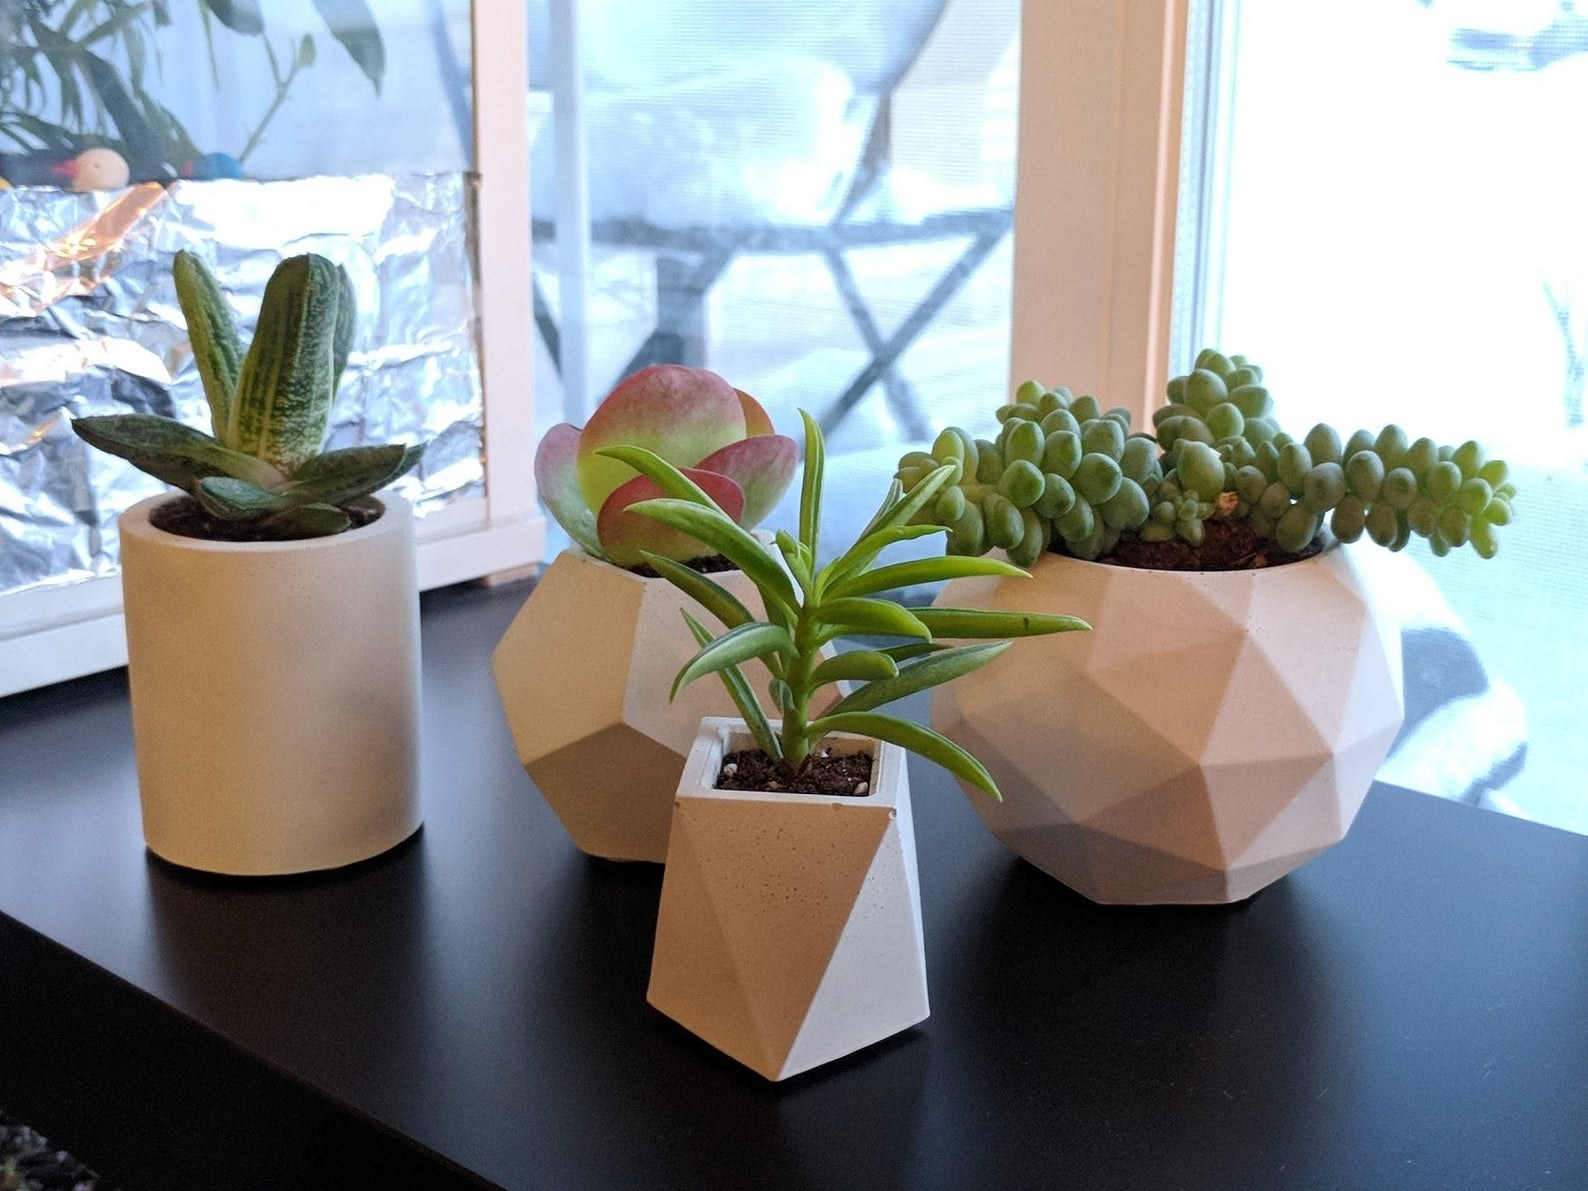 four different geometric planters with different kinds of succulents in them